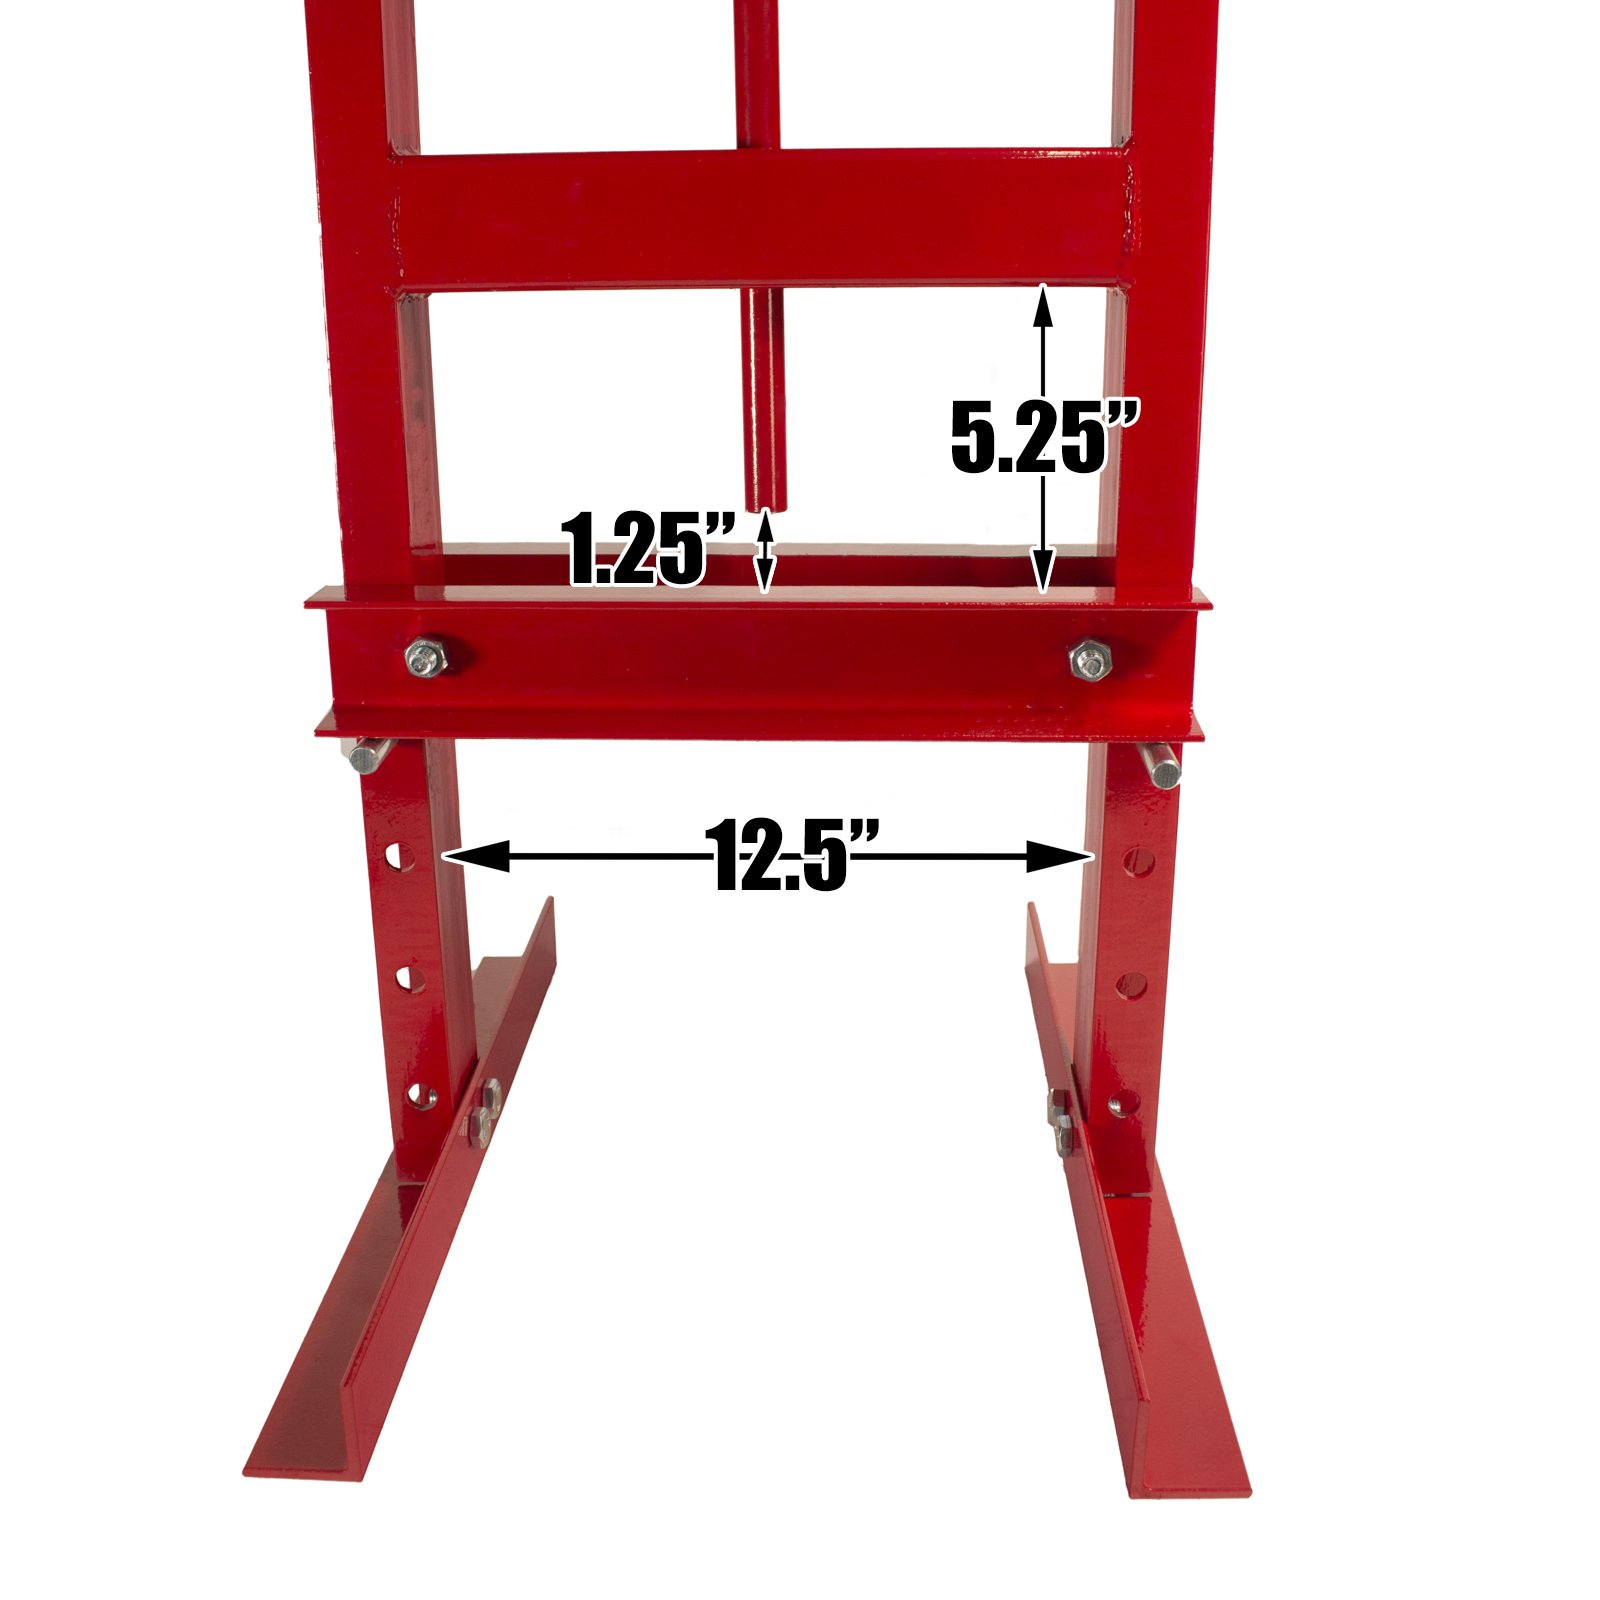 Dragway Tools 6-Ton Hydraulic Shop Floor Press with Press Plates and H Frame is Ideal for Gears and Bearings by Dragway Tools (Image #9)